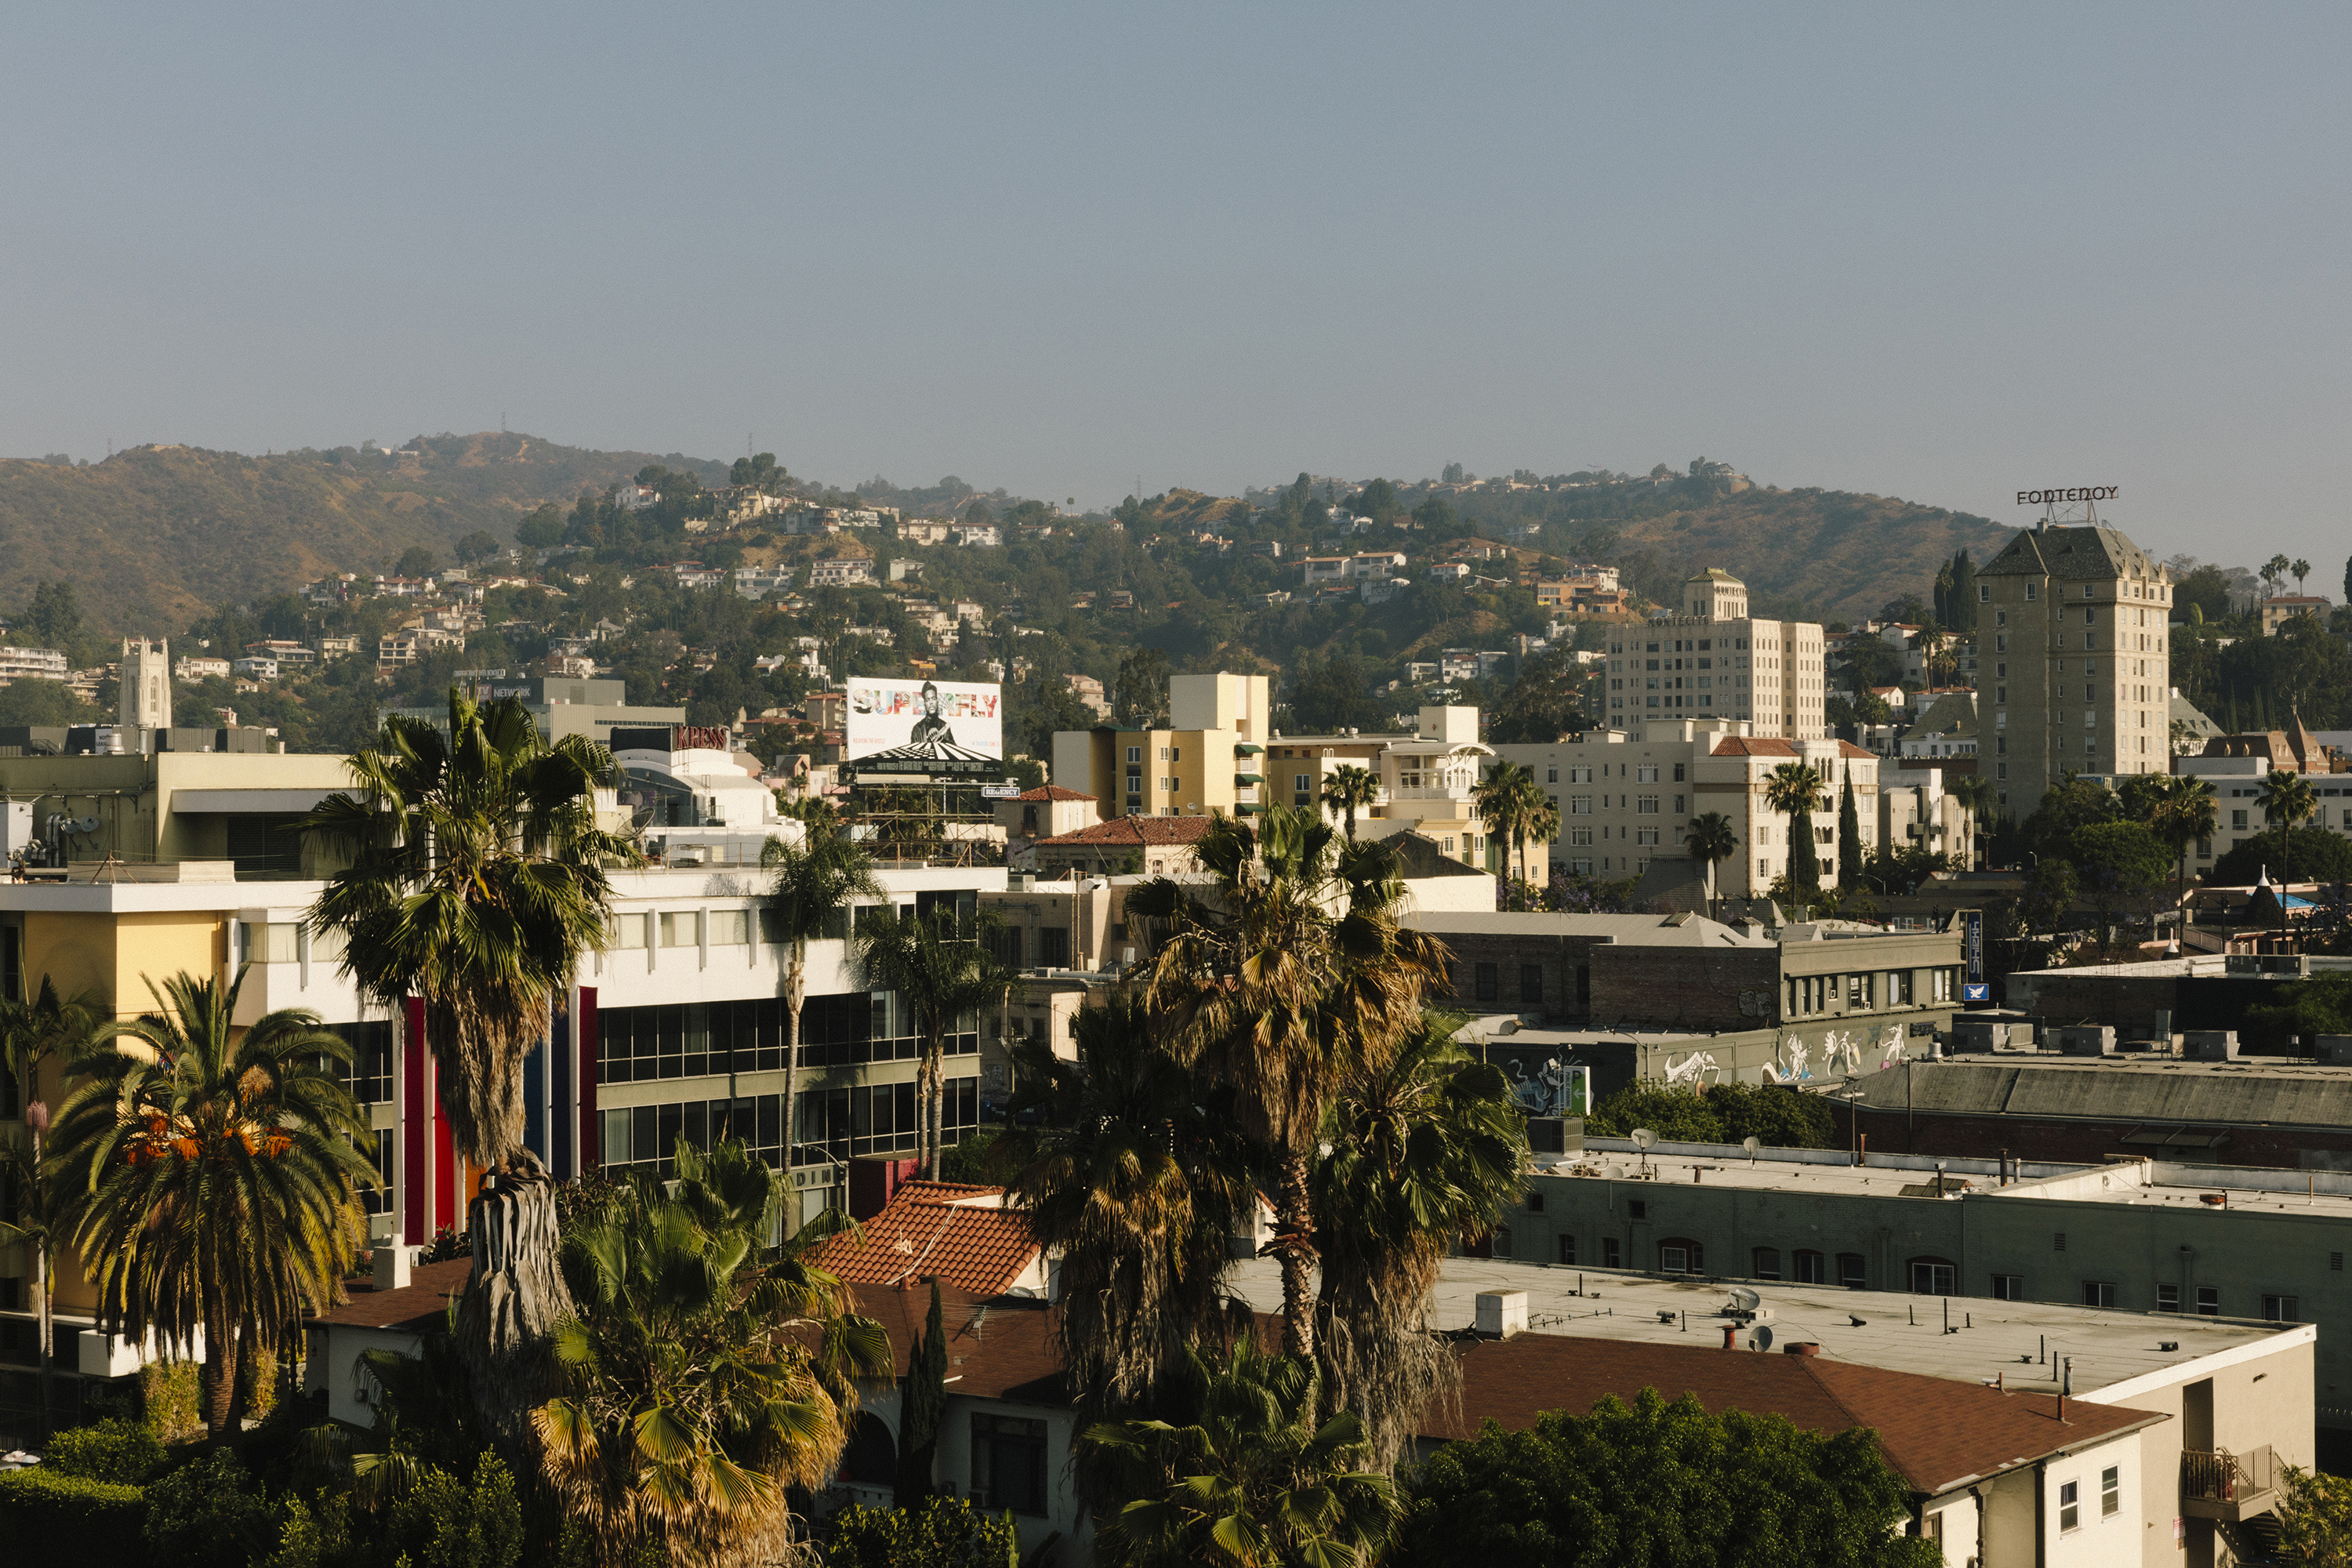 Aerial view of Los Angeles neighborhood, low rise buildings, some tall ones, with palm trees interspersed and the hills behind.